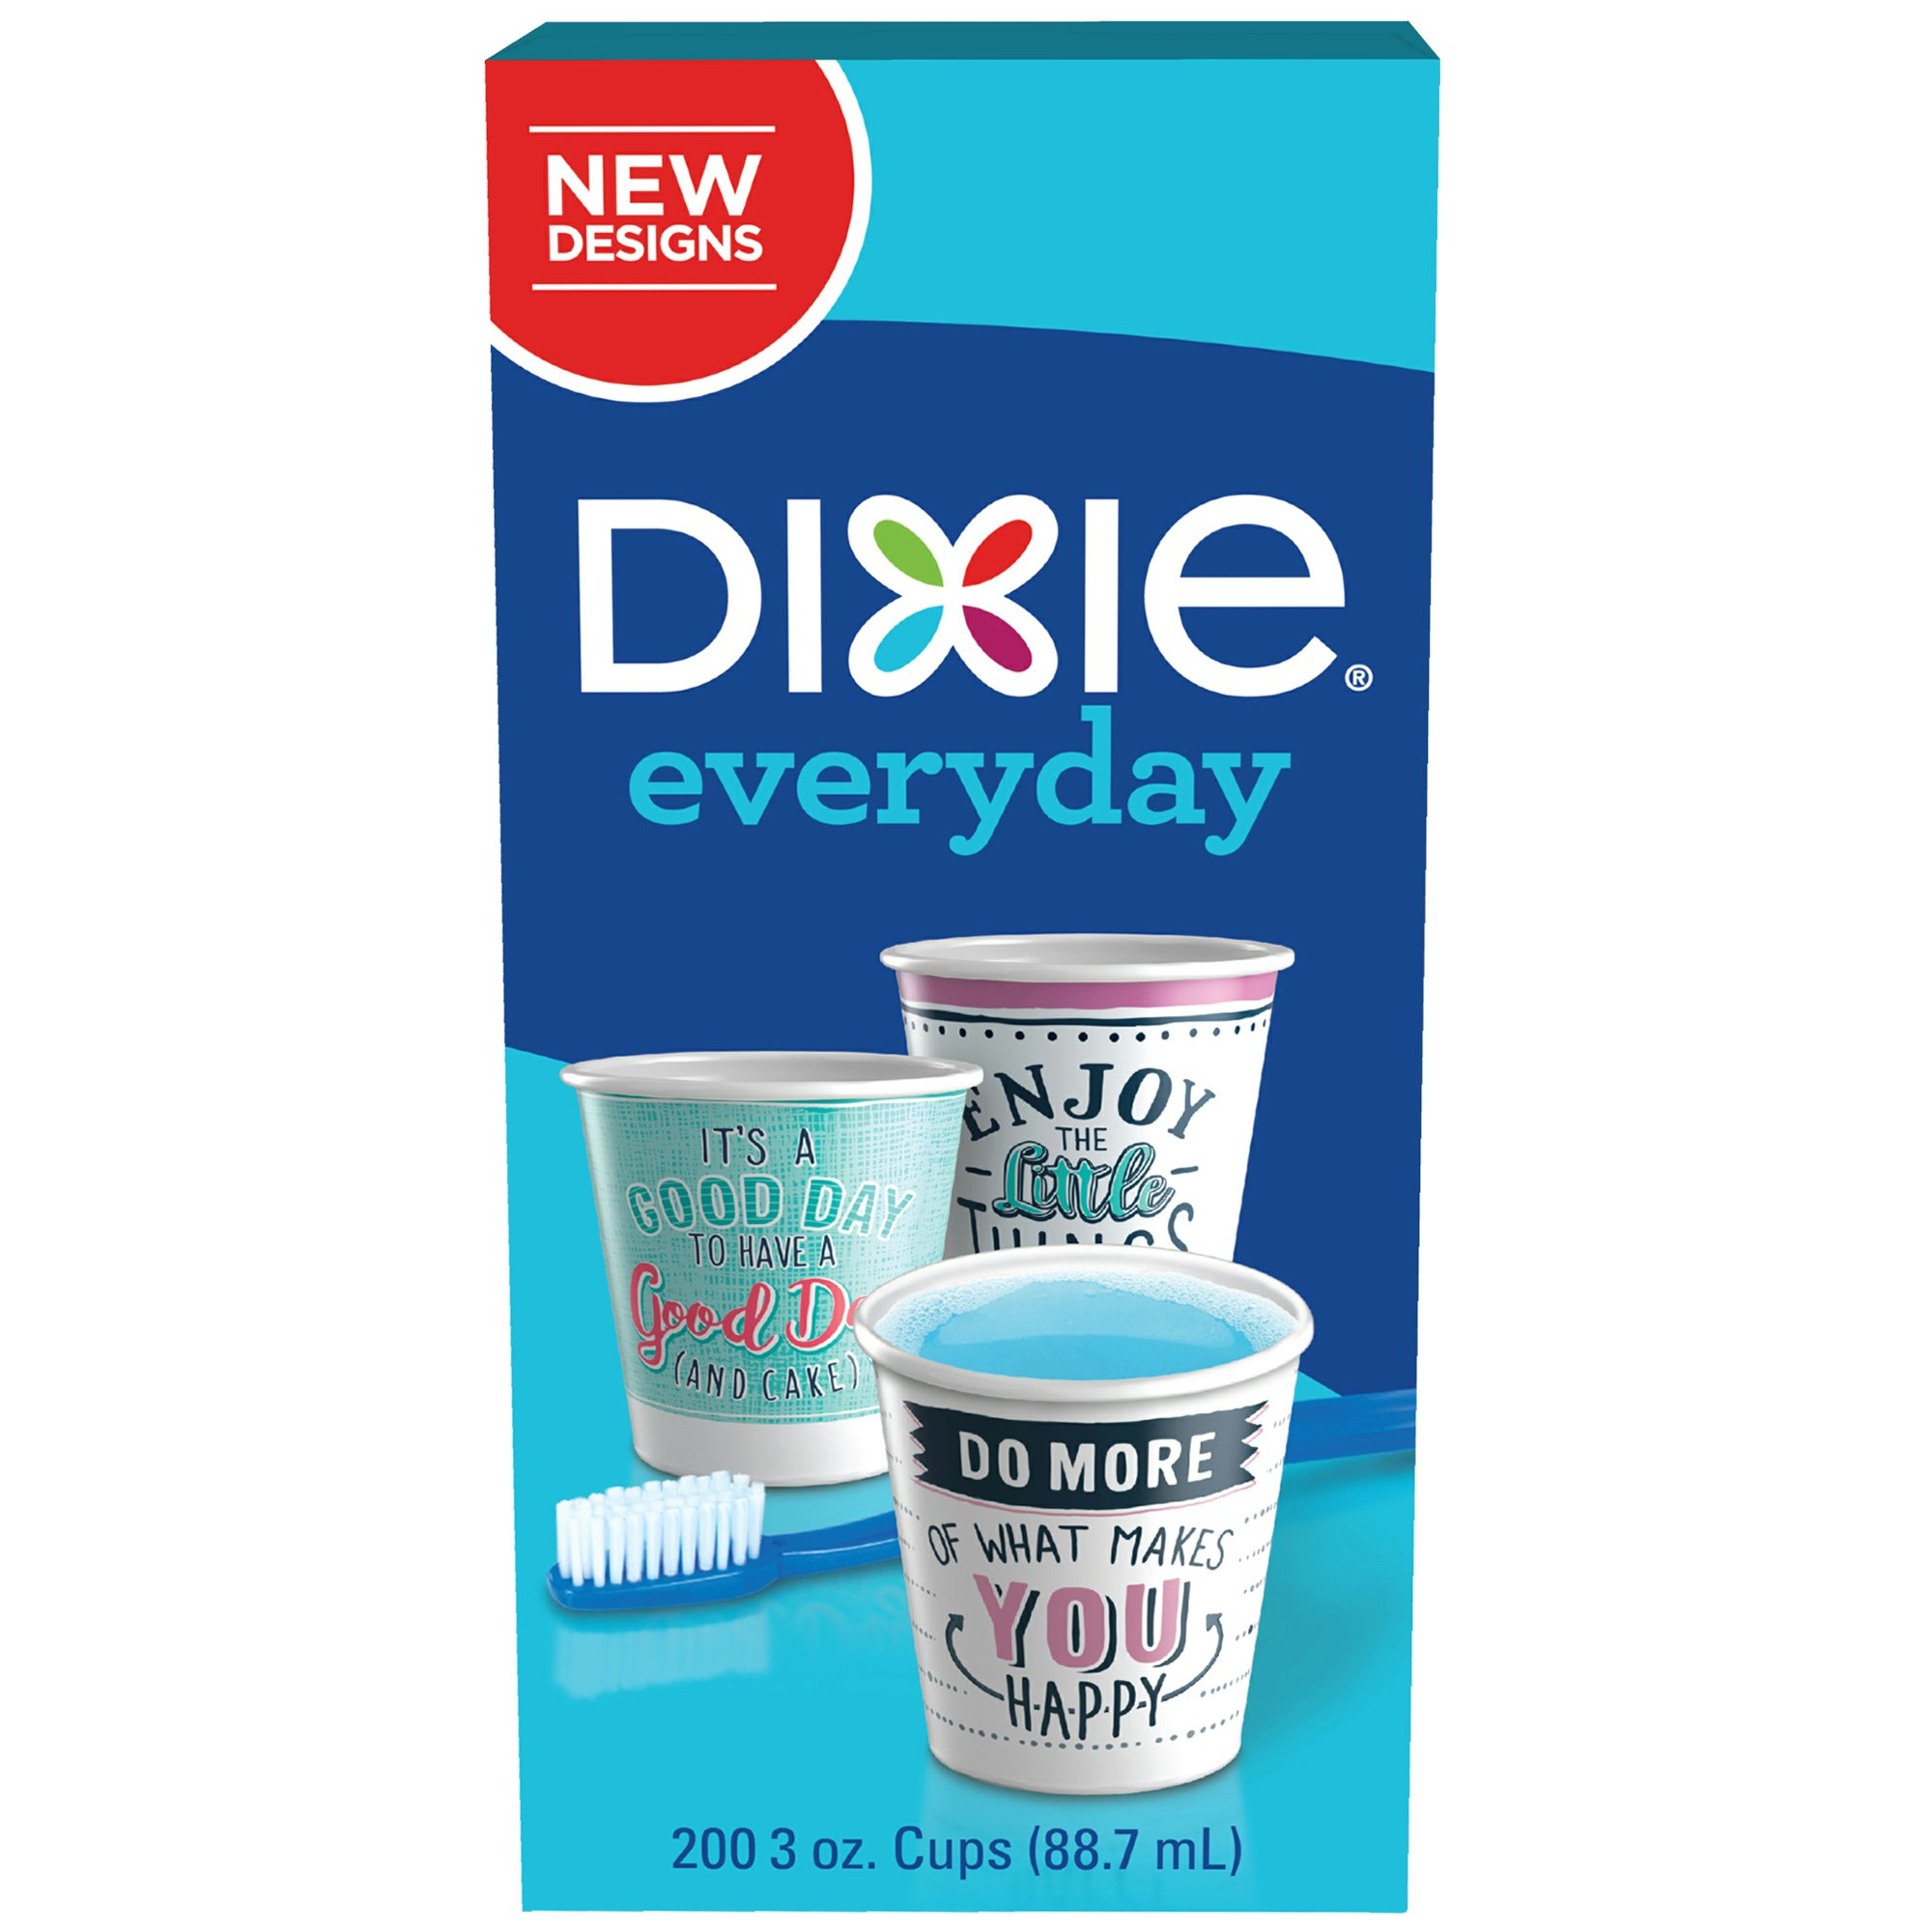 Dixie Everyday Disposable Bath Cups, 3 Oz, 200 Count, Augmented Reality Paper Cups by Dixie